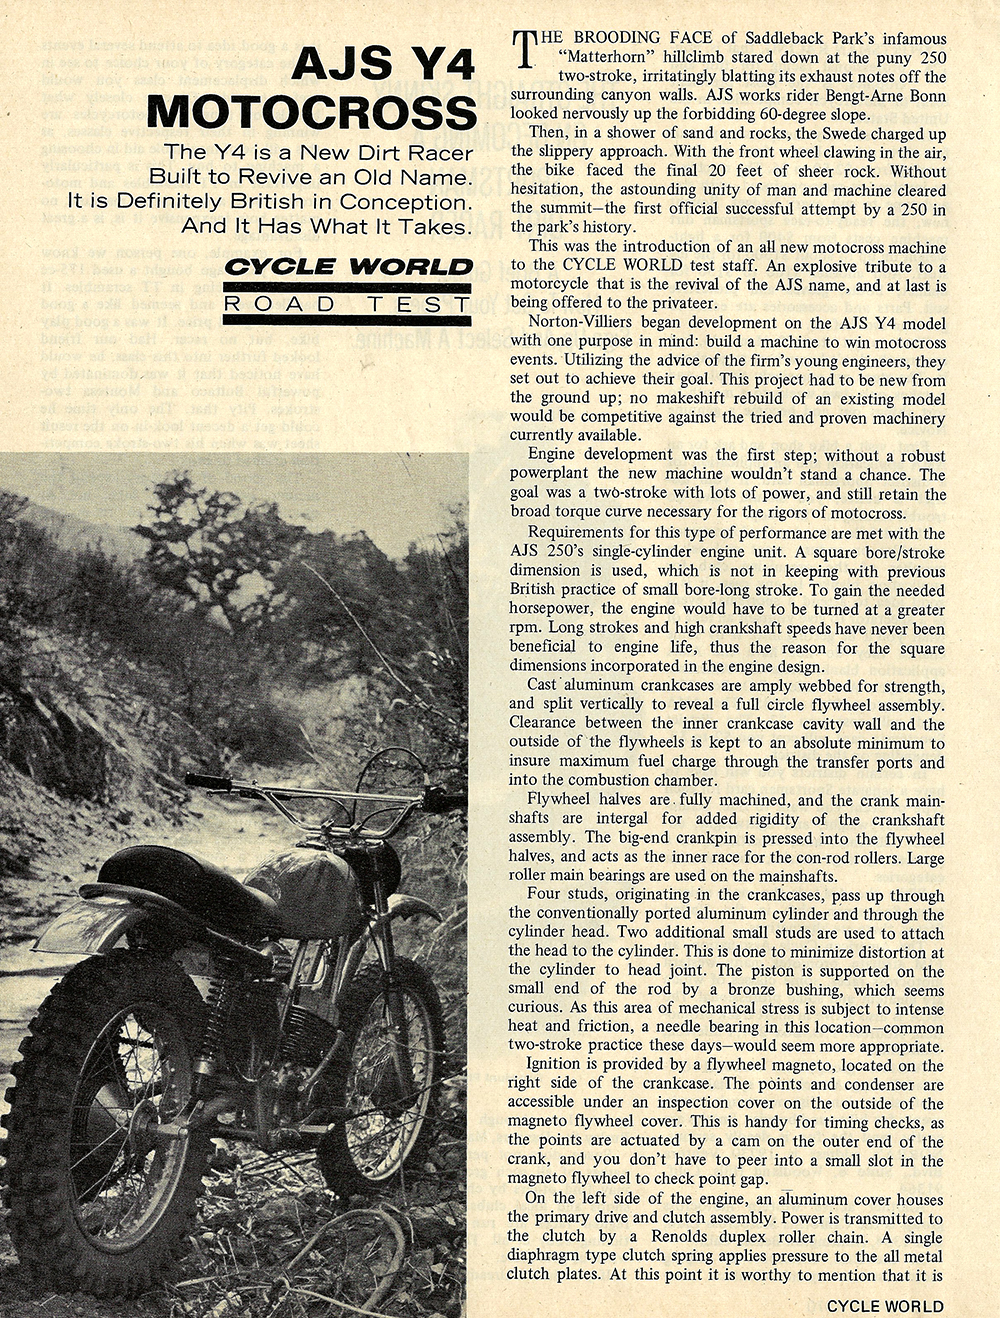 1970 AJS Y4 Motocross road test 01.jpg